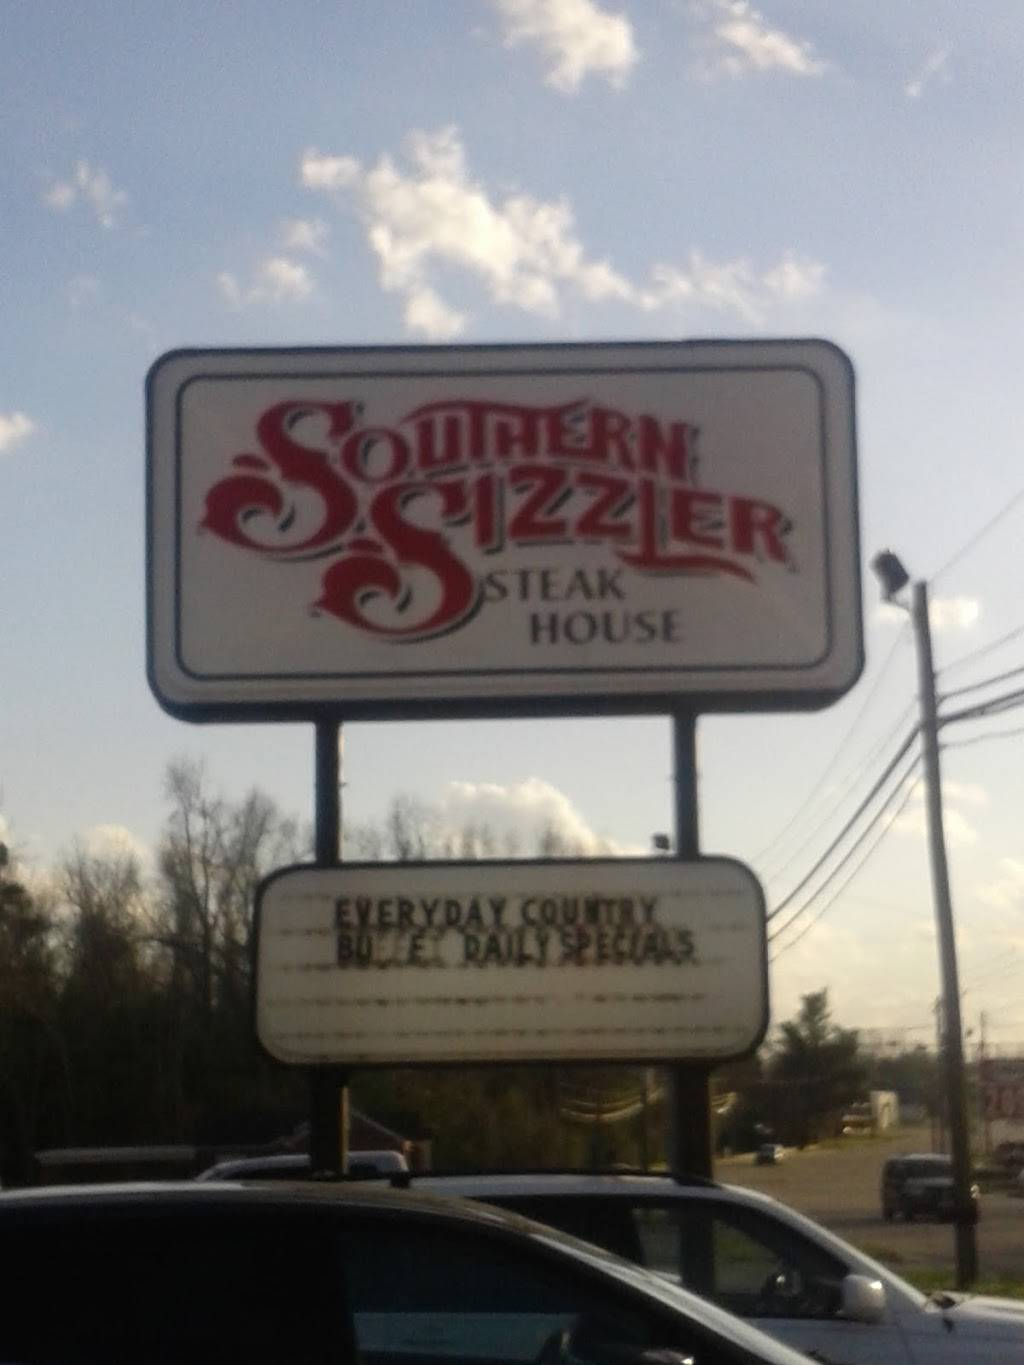 Southern Sizzler   restaurant   1405 S Madison St, Whiteville, NC 28472, USA   9106401861 OR +1 910-640-1861